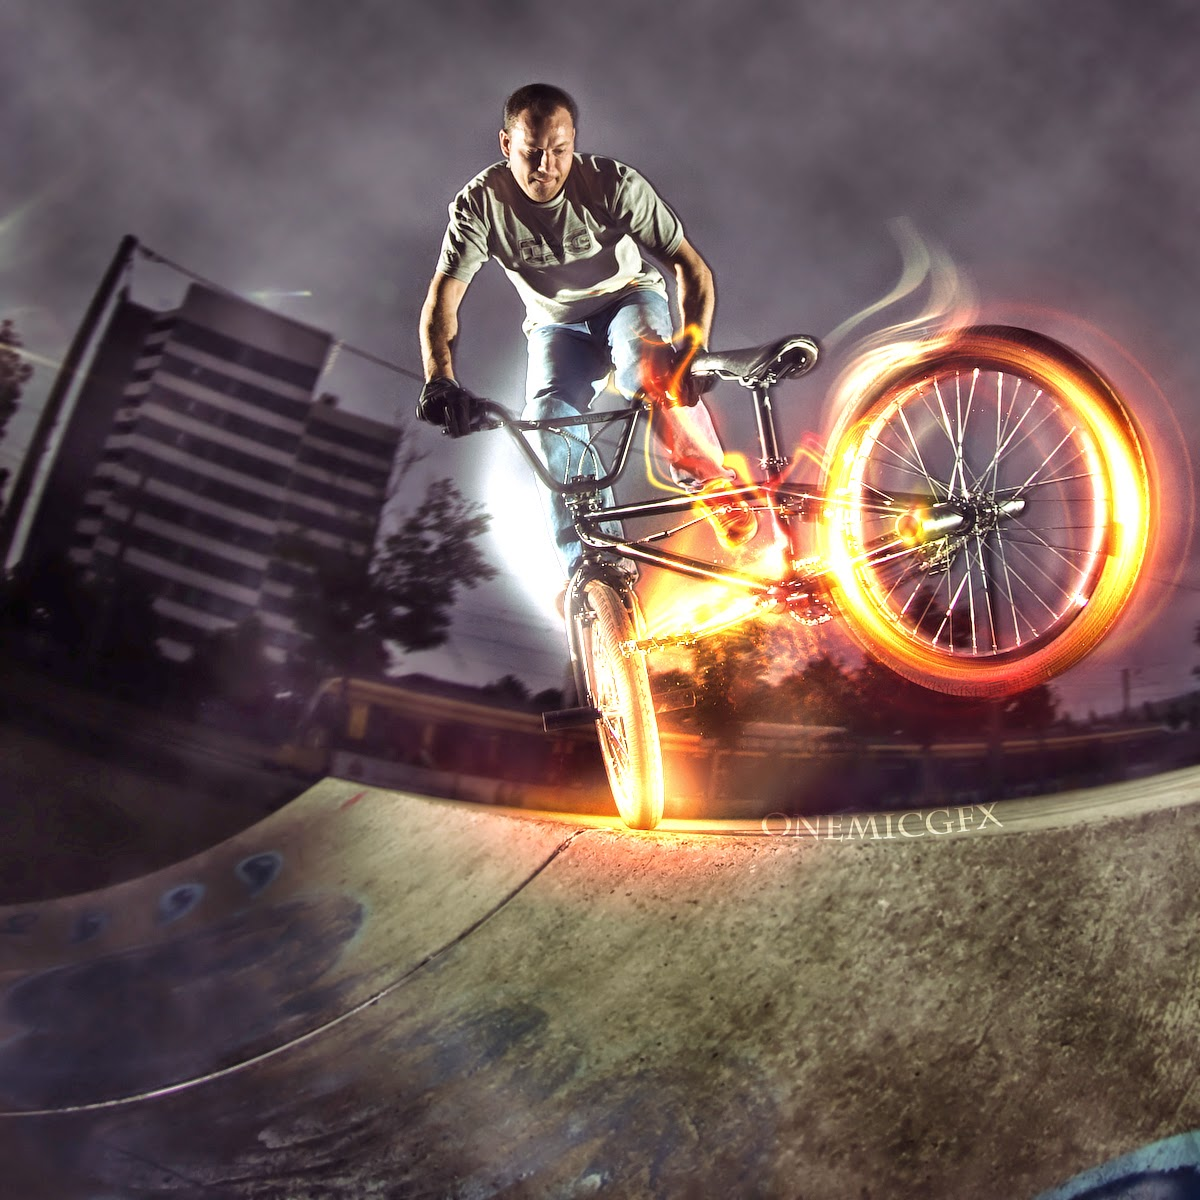 Bmx bike freestyle hd wallpapers hd wallpapers bmx freestyle wallpapers hd free voltagebd Choice Image